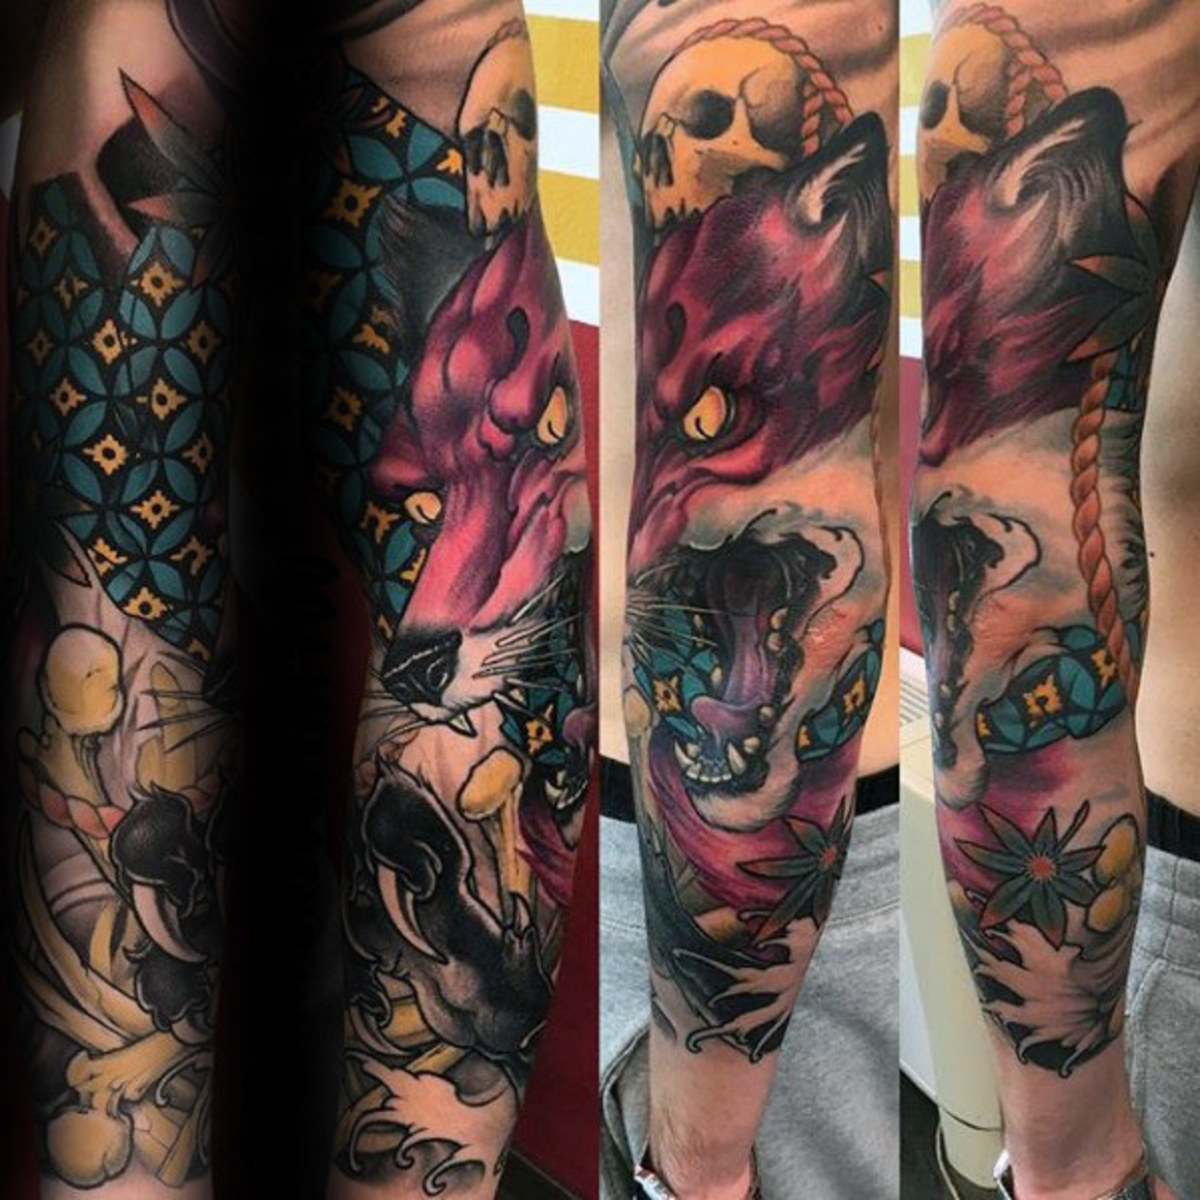 Kitsune Tattoos: Origins, Meanings, & Types of Japanese Fox